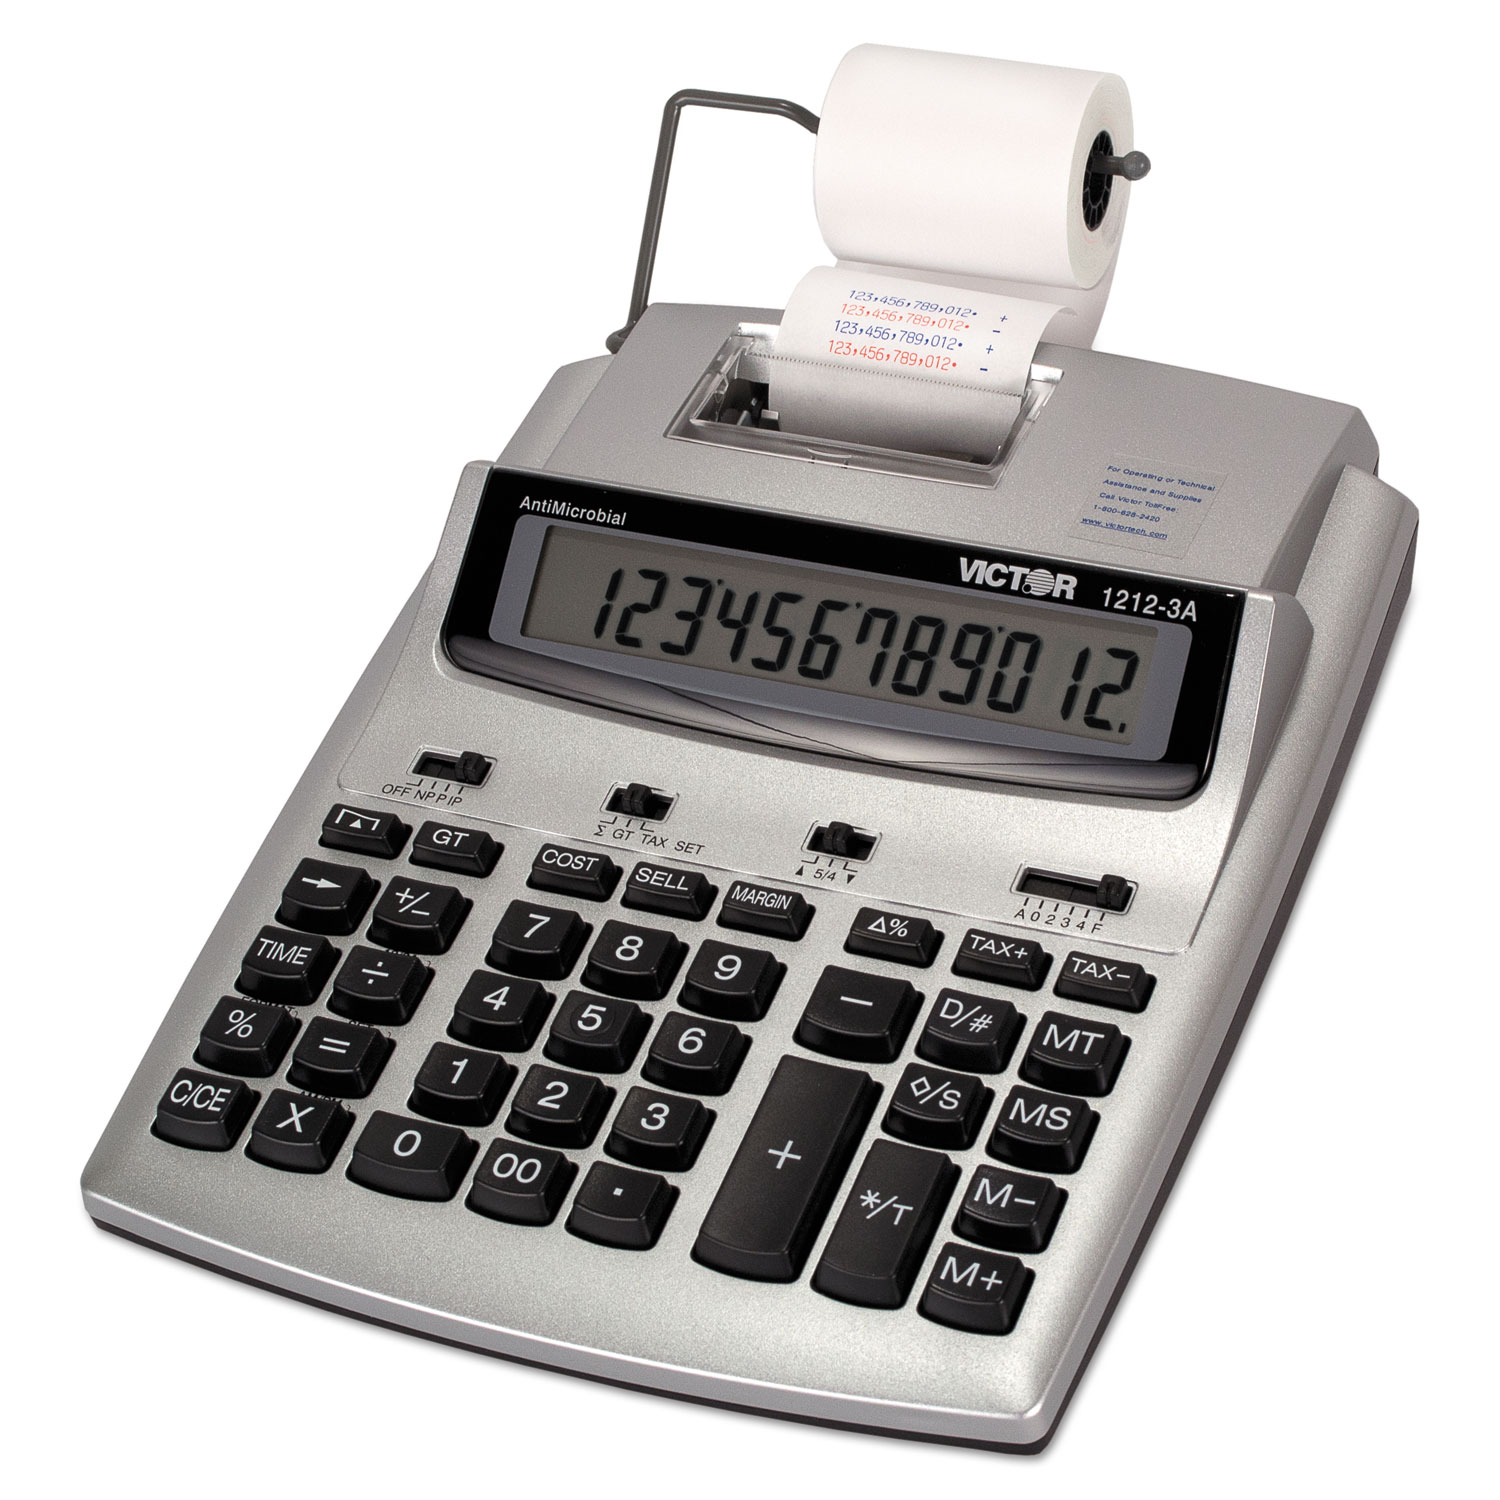 1212-3A Antimicrobial Printing Calculator, Blue/Red Print, 2 7 Lines/Sec